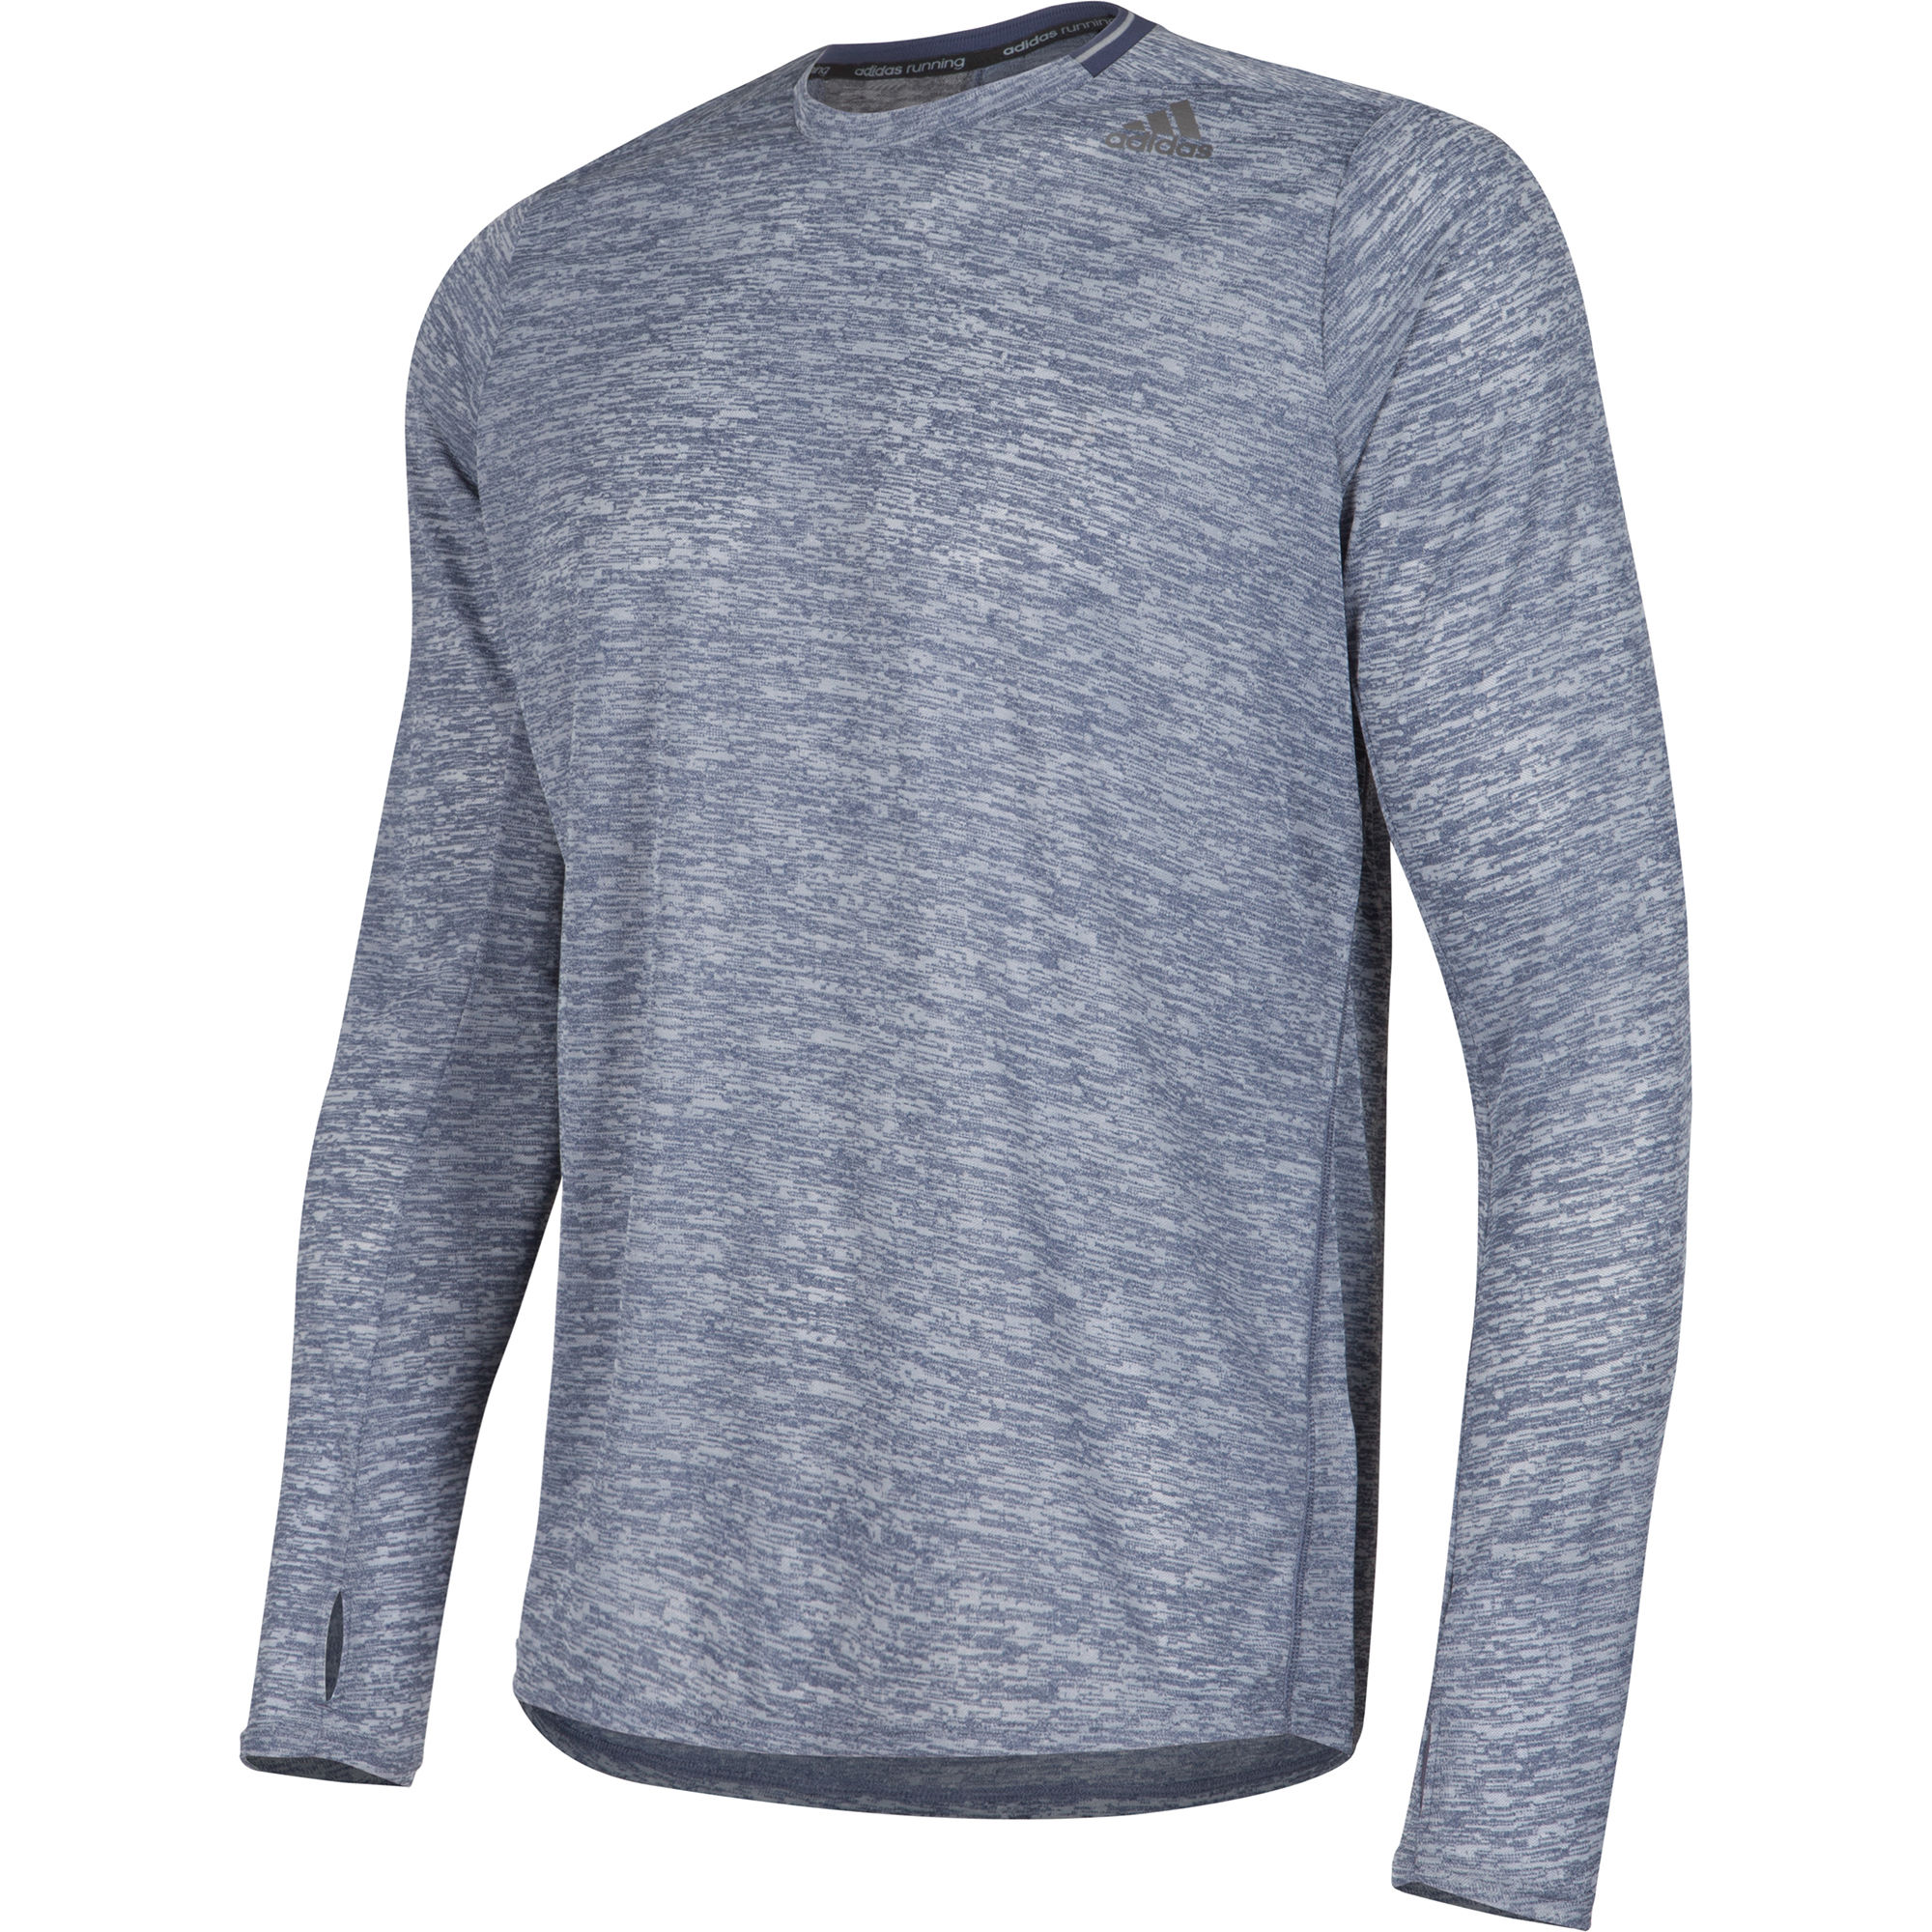 Wiggle | Adidas Supernova Long Sleeve Tee (AW15)